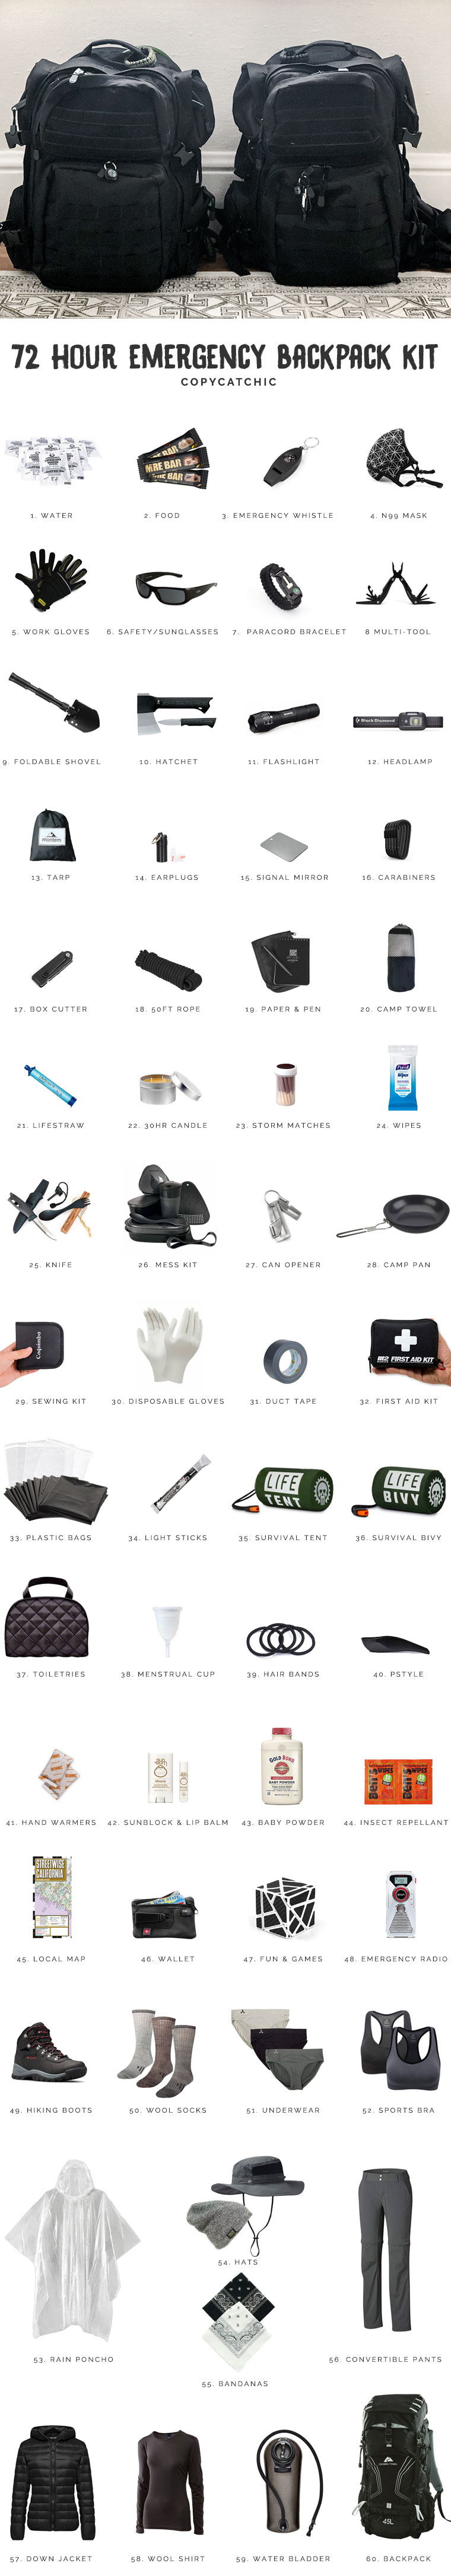 Simple, budget friendly, bug out bag, 72 hour emergency kit backpack. All of the essentials you'd need to survive for 3 days in an emergency | copycatchic luxe living for less, budget home decor and design, room design, looks for less, budget travel and more